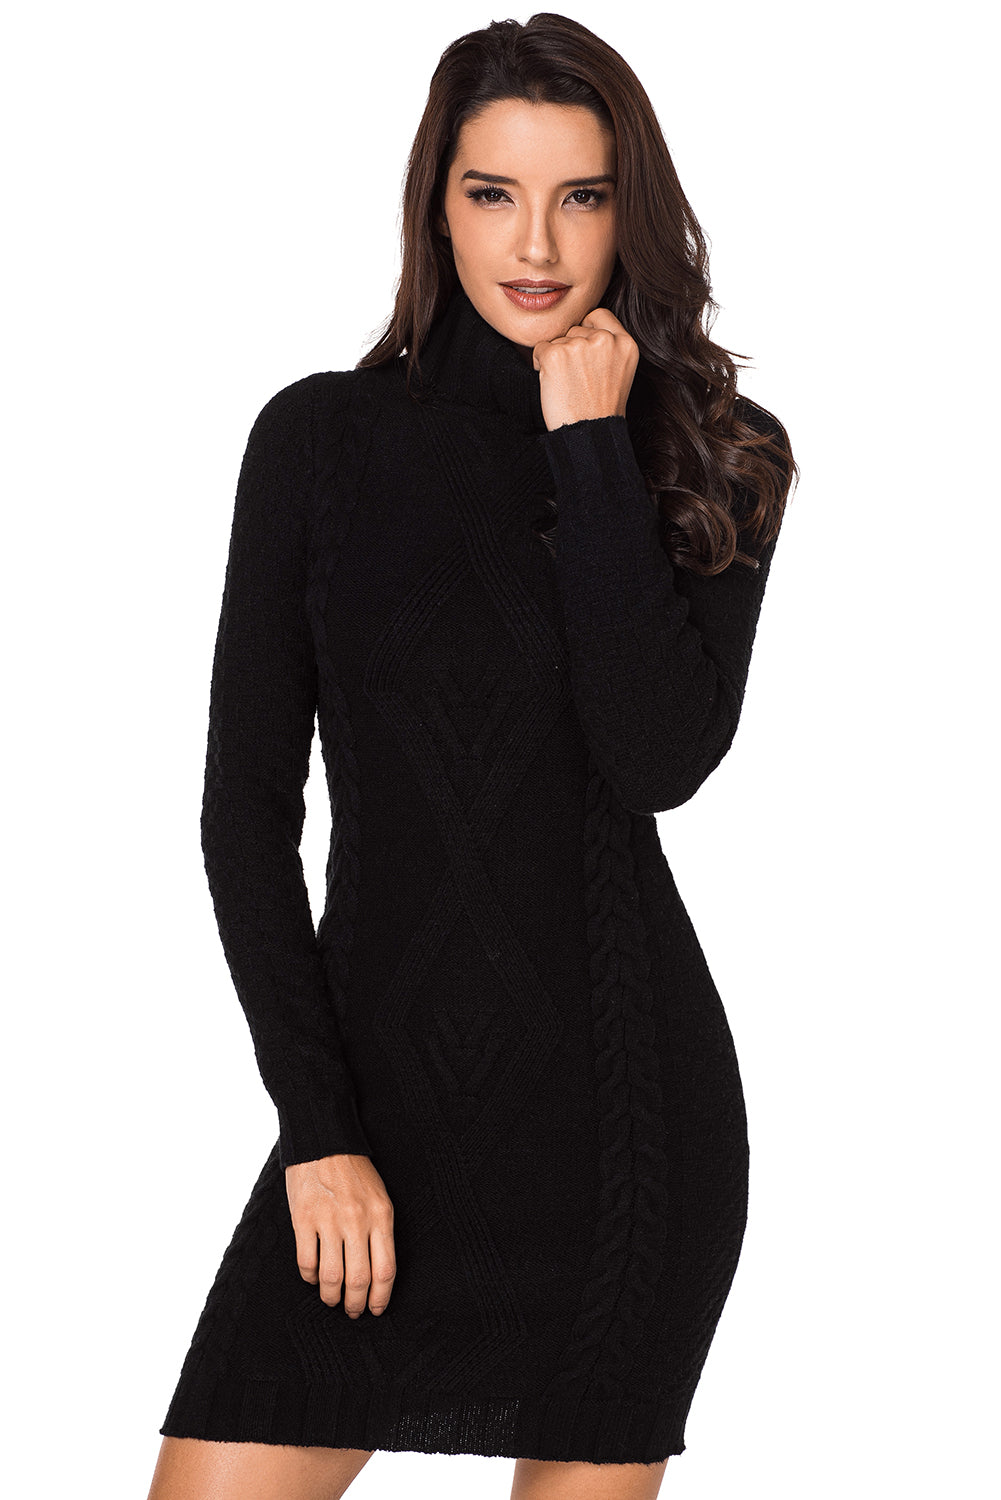 Black Stylish Pattern Knit Turtleneck Sweater Dress